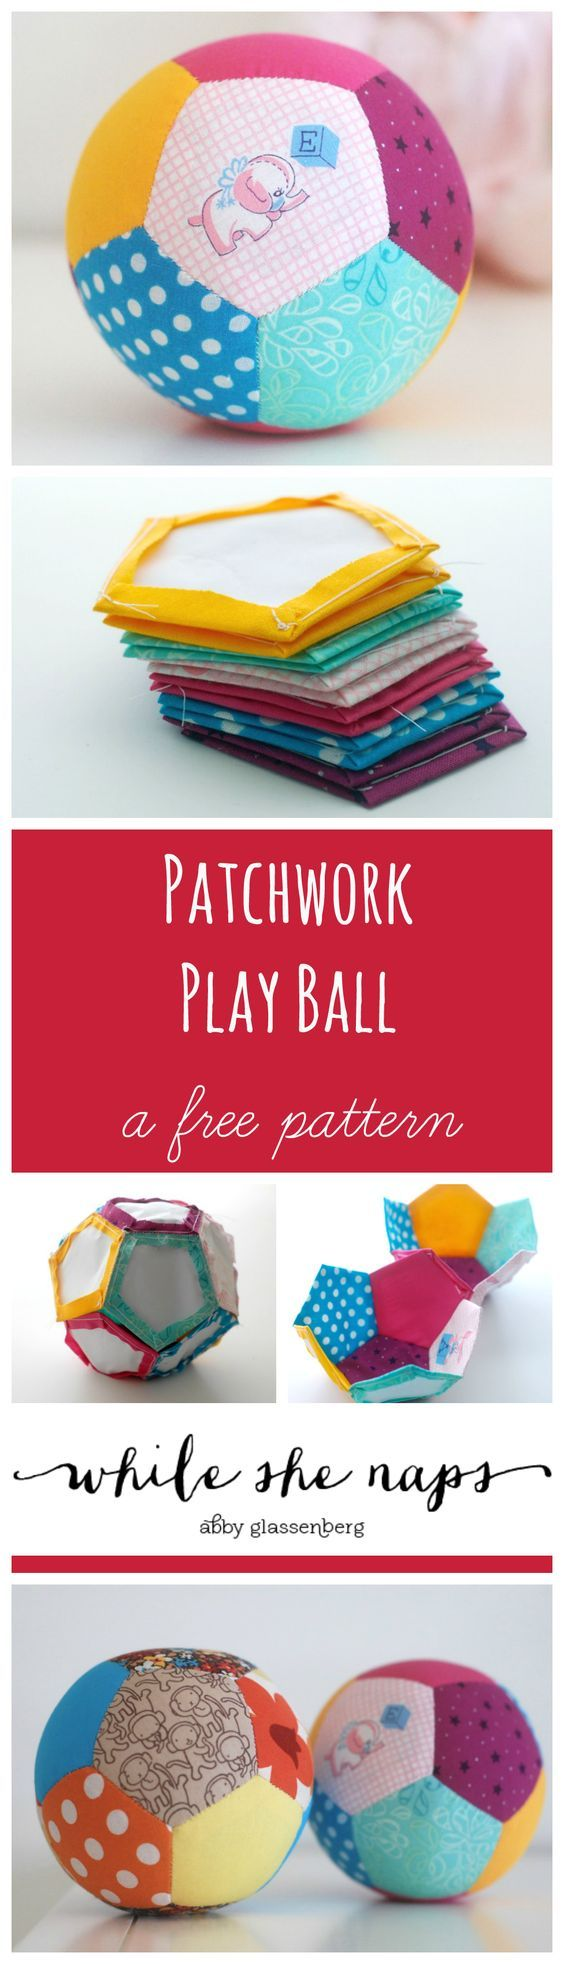 Patchwork Ball Collage                                                                                                                                                                                 More                                                                                                                                                                                 Más…